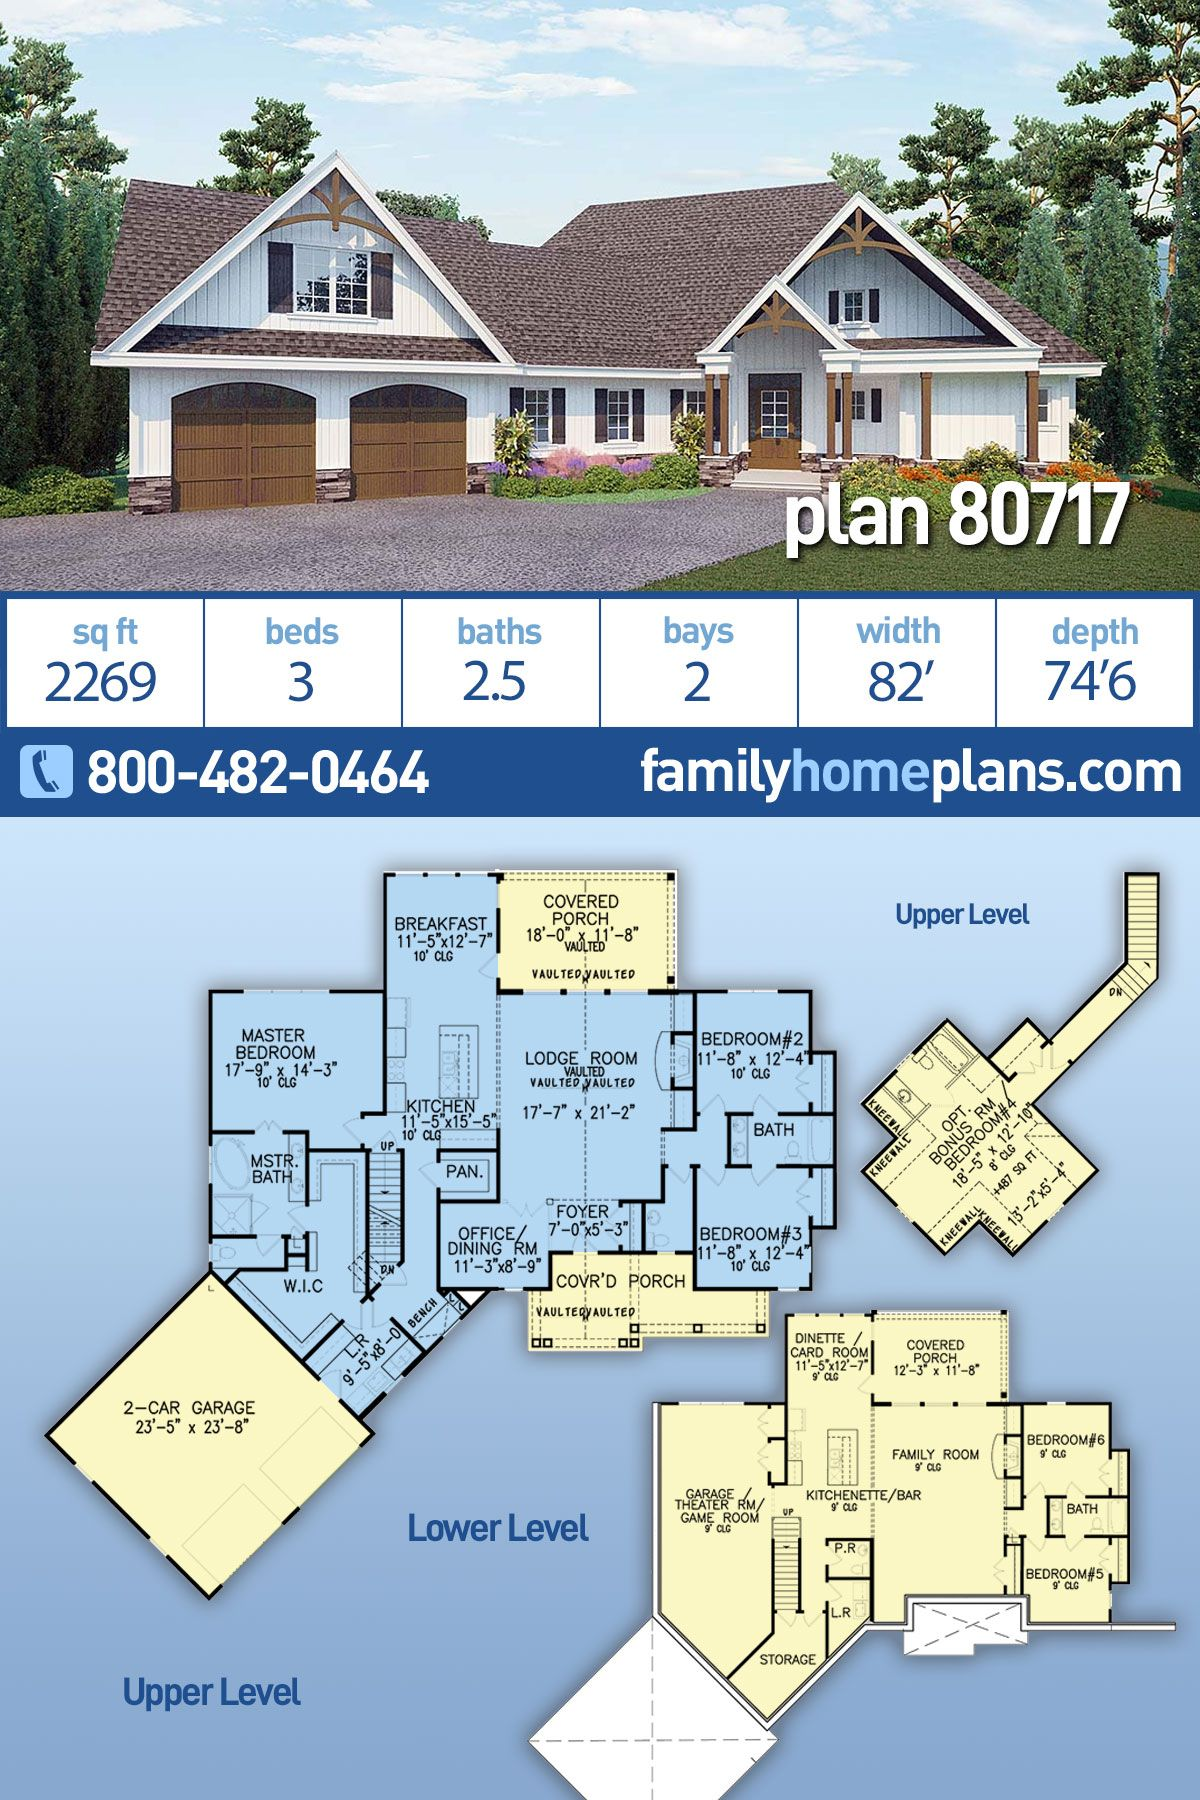 Craftsman Style House Plan 80717 With 3 Bed 3 Bath 2 Car Garage Craftsman Style House Plans Craftsman House House Plans Farmhouse